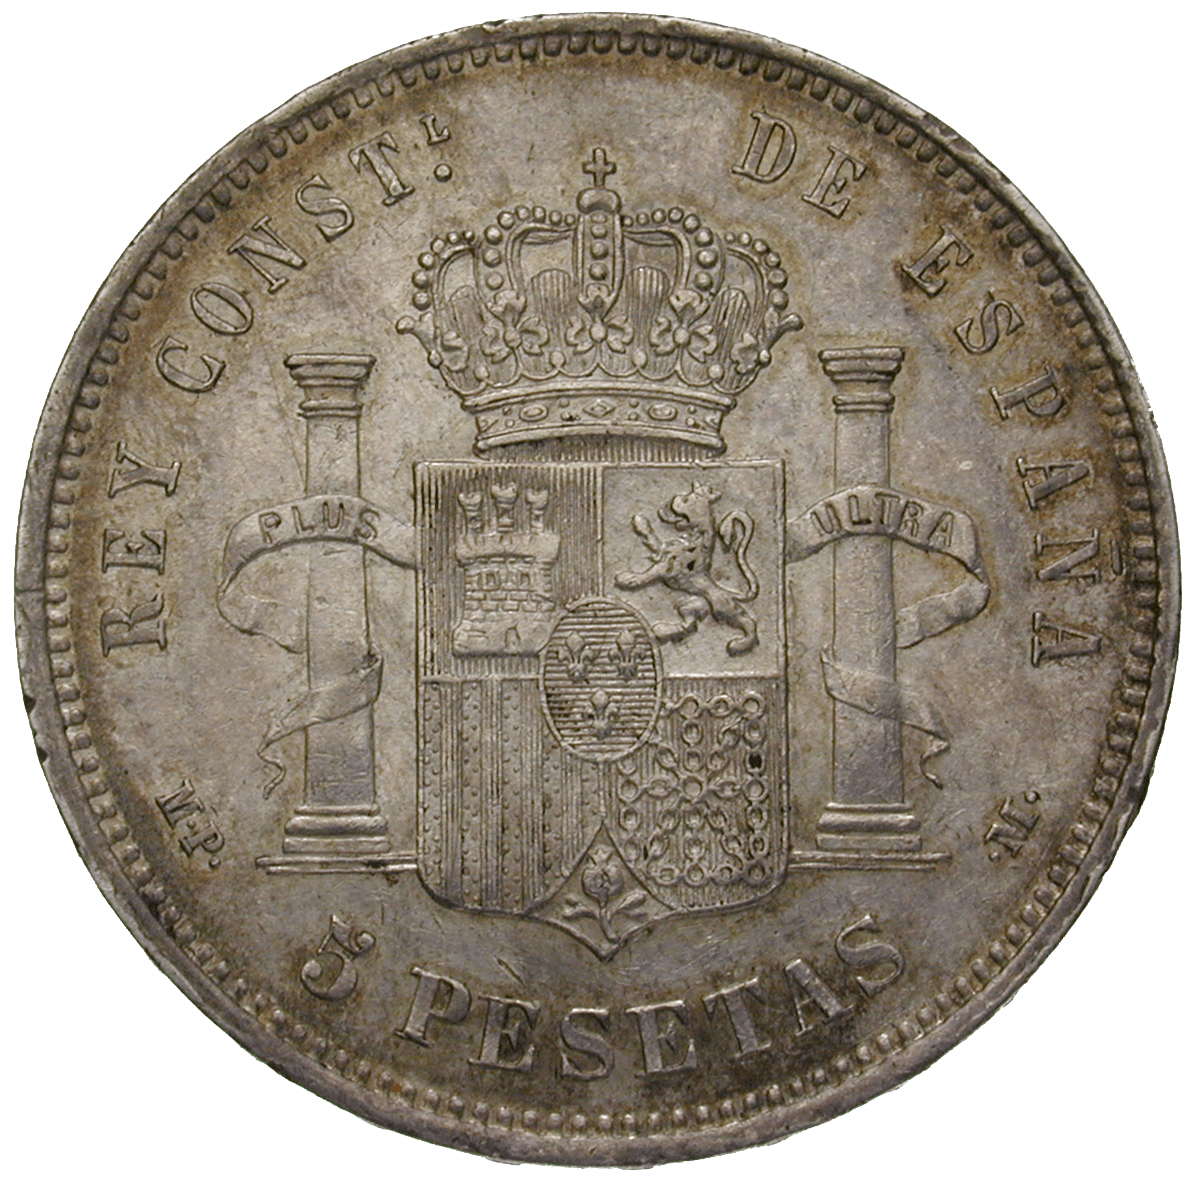 Kingdom of Spain, Alfons XIII , 5 Pesetas 1888 (reverse)